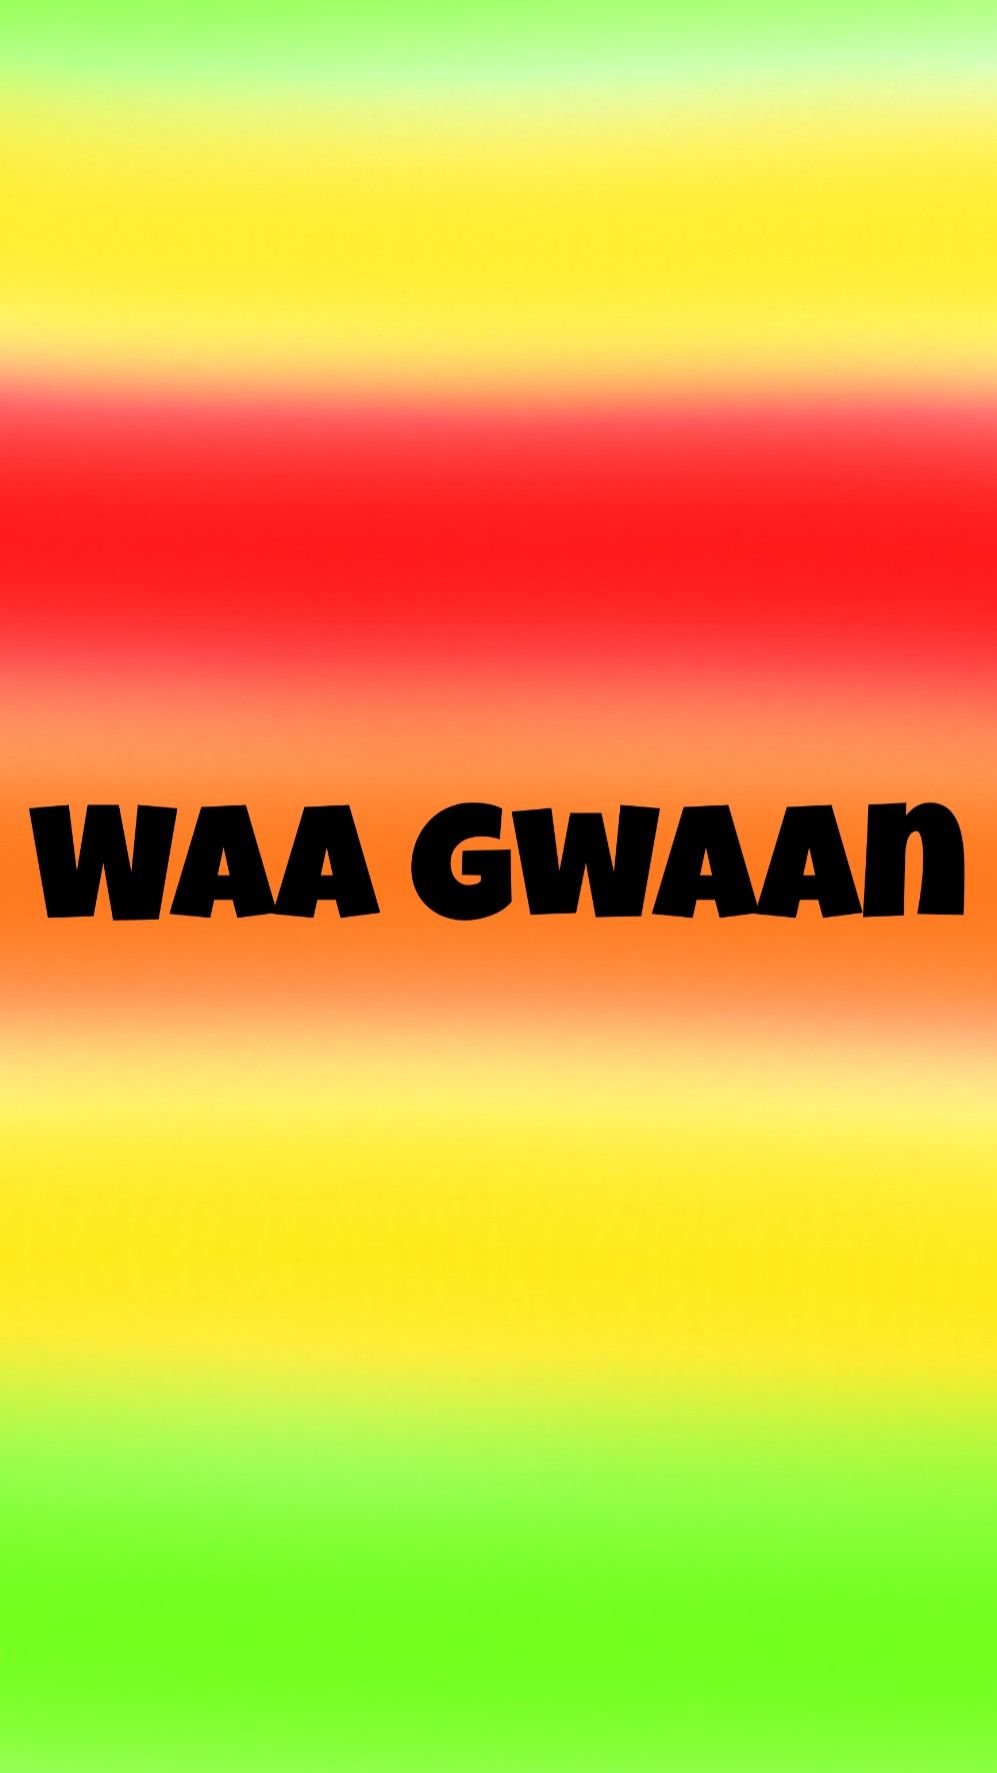 Waa gwaan is hi in Jamaican